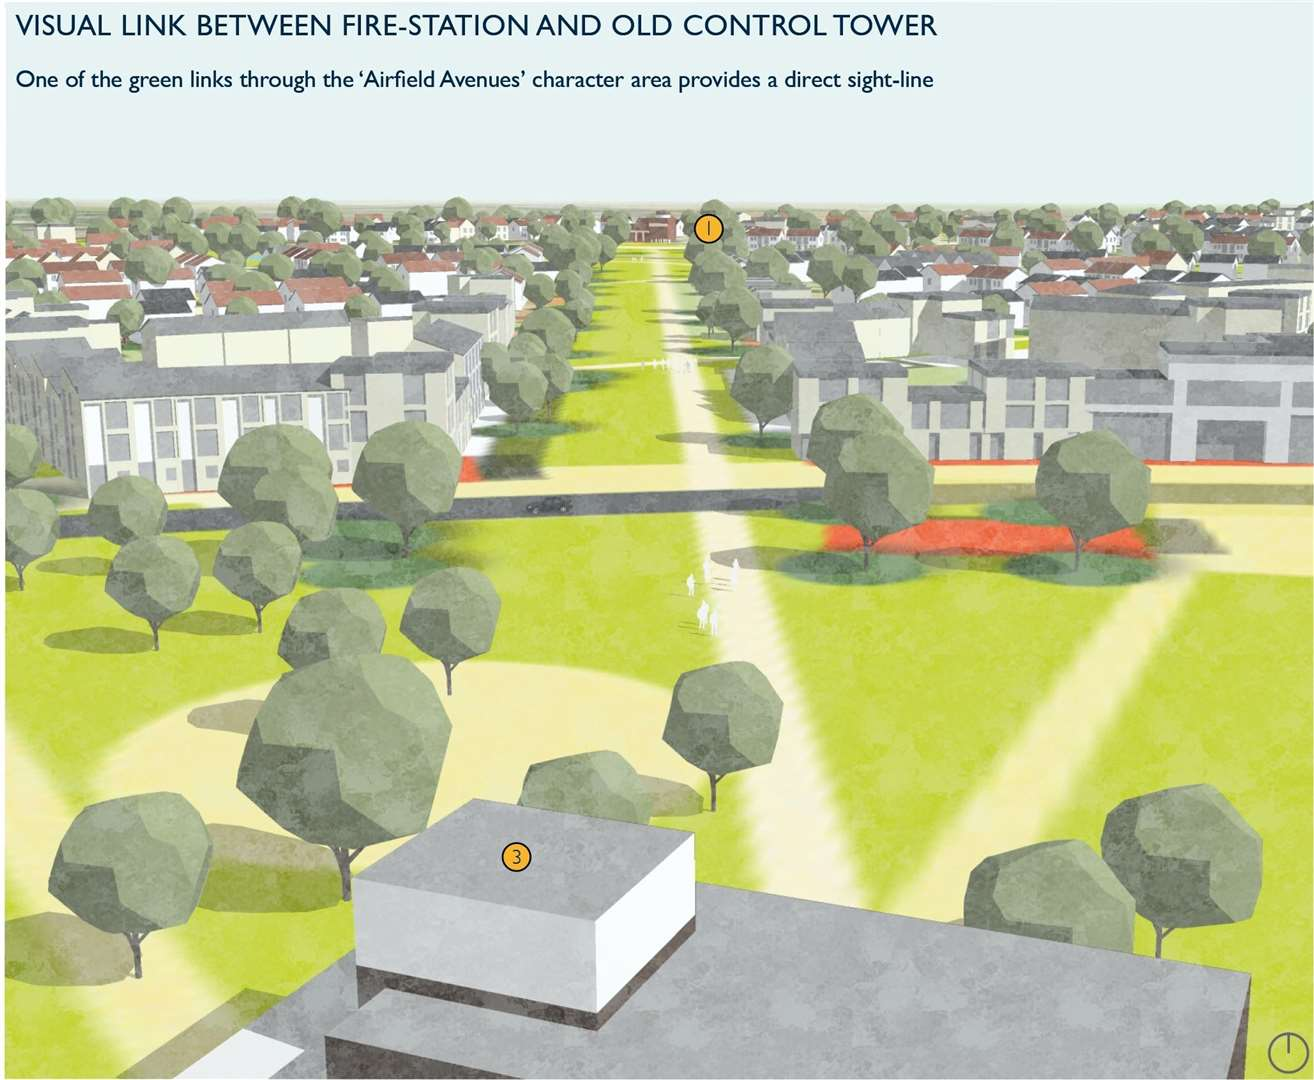 Artists impressions released by Stone Hill Park revealed their vision for housing and business at Manston